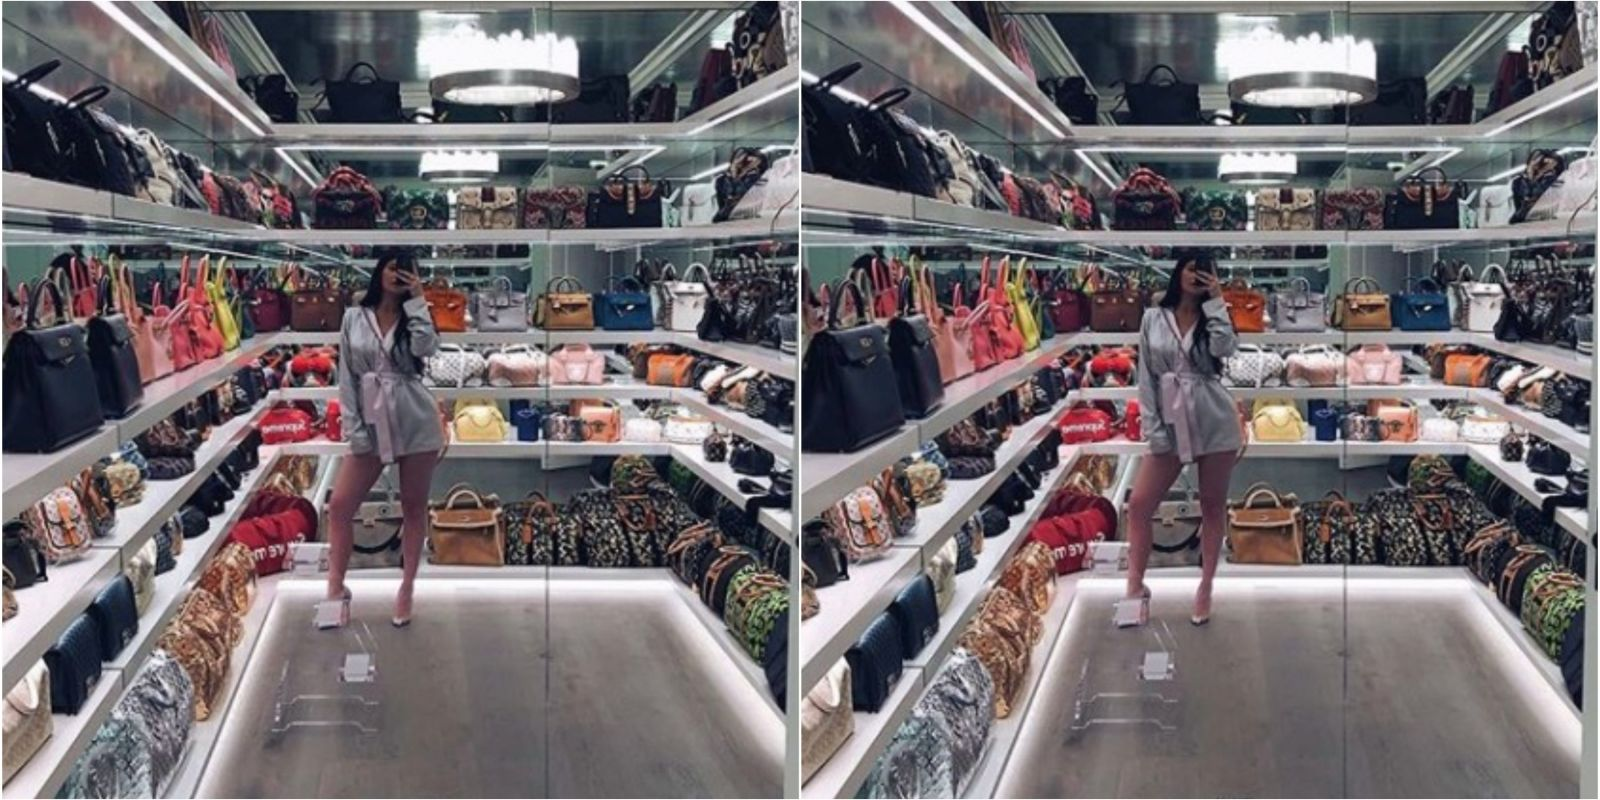 How Much Is Gucci Worth >> How Much Are All Of Those Handbags Worth In Kylie Jenner's Closet?